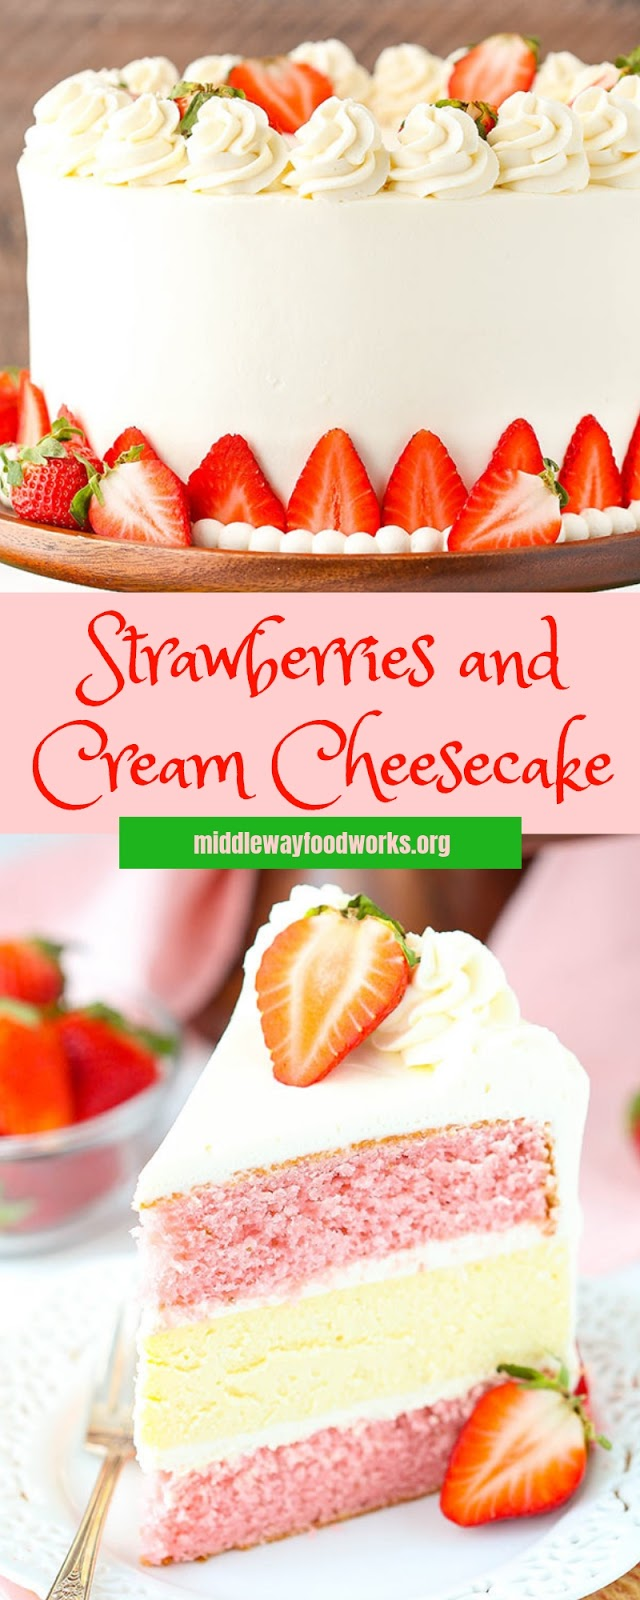 Strawberries and Cream Cheesecake #christmas #cake